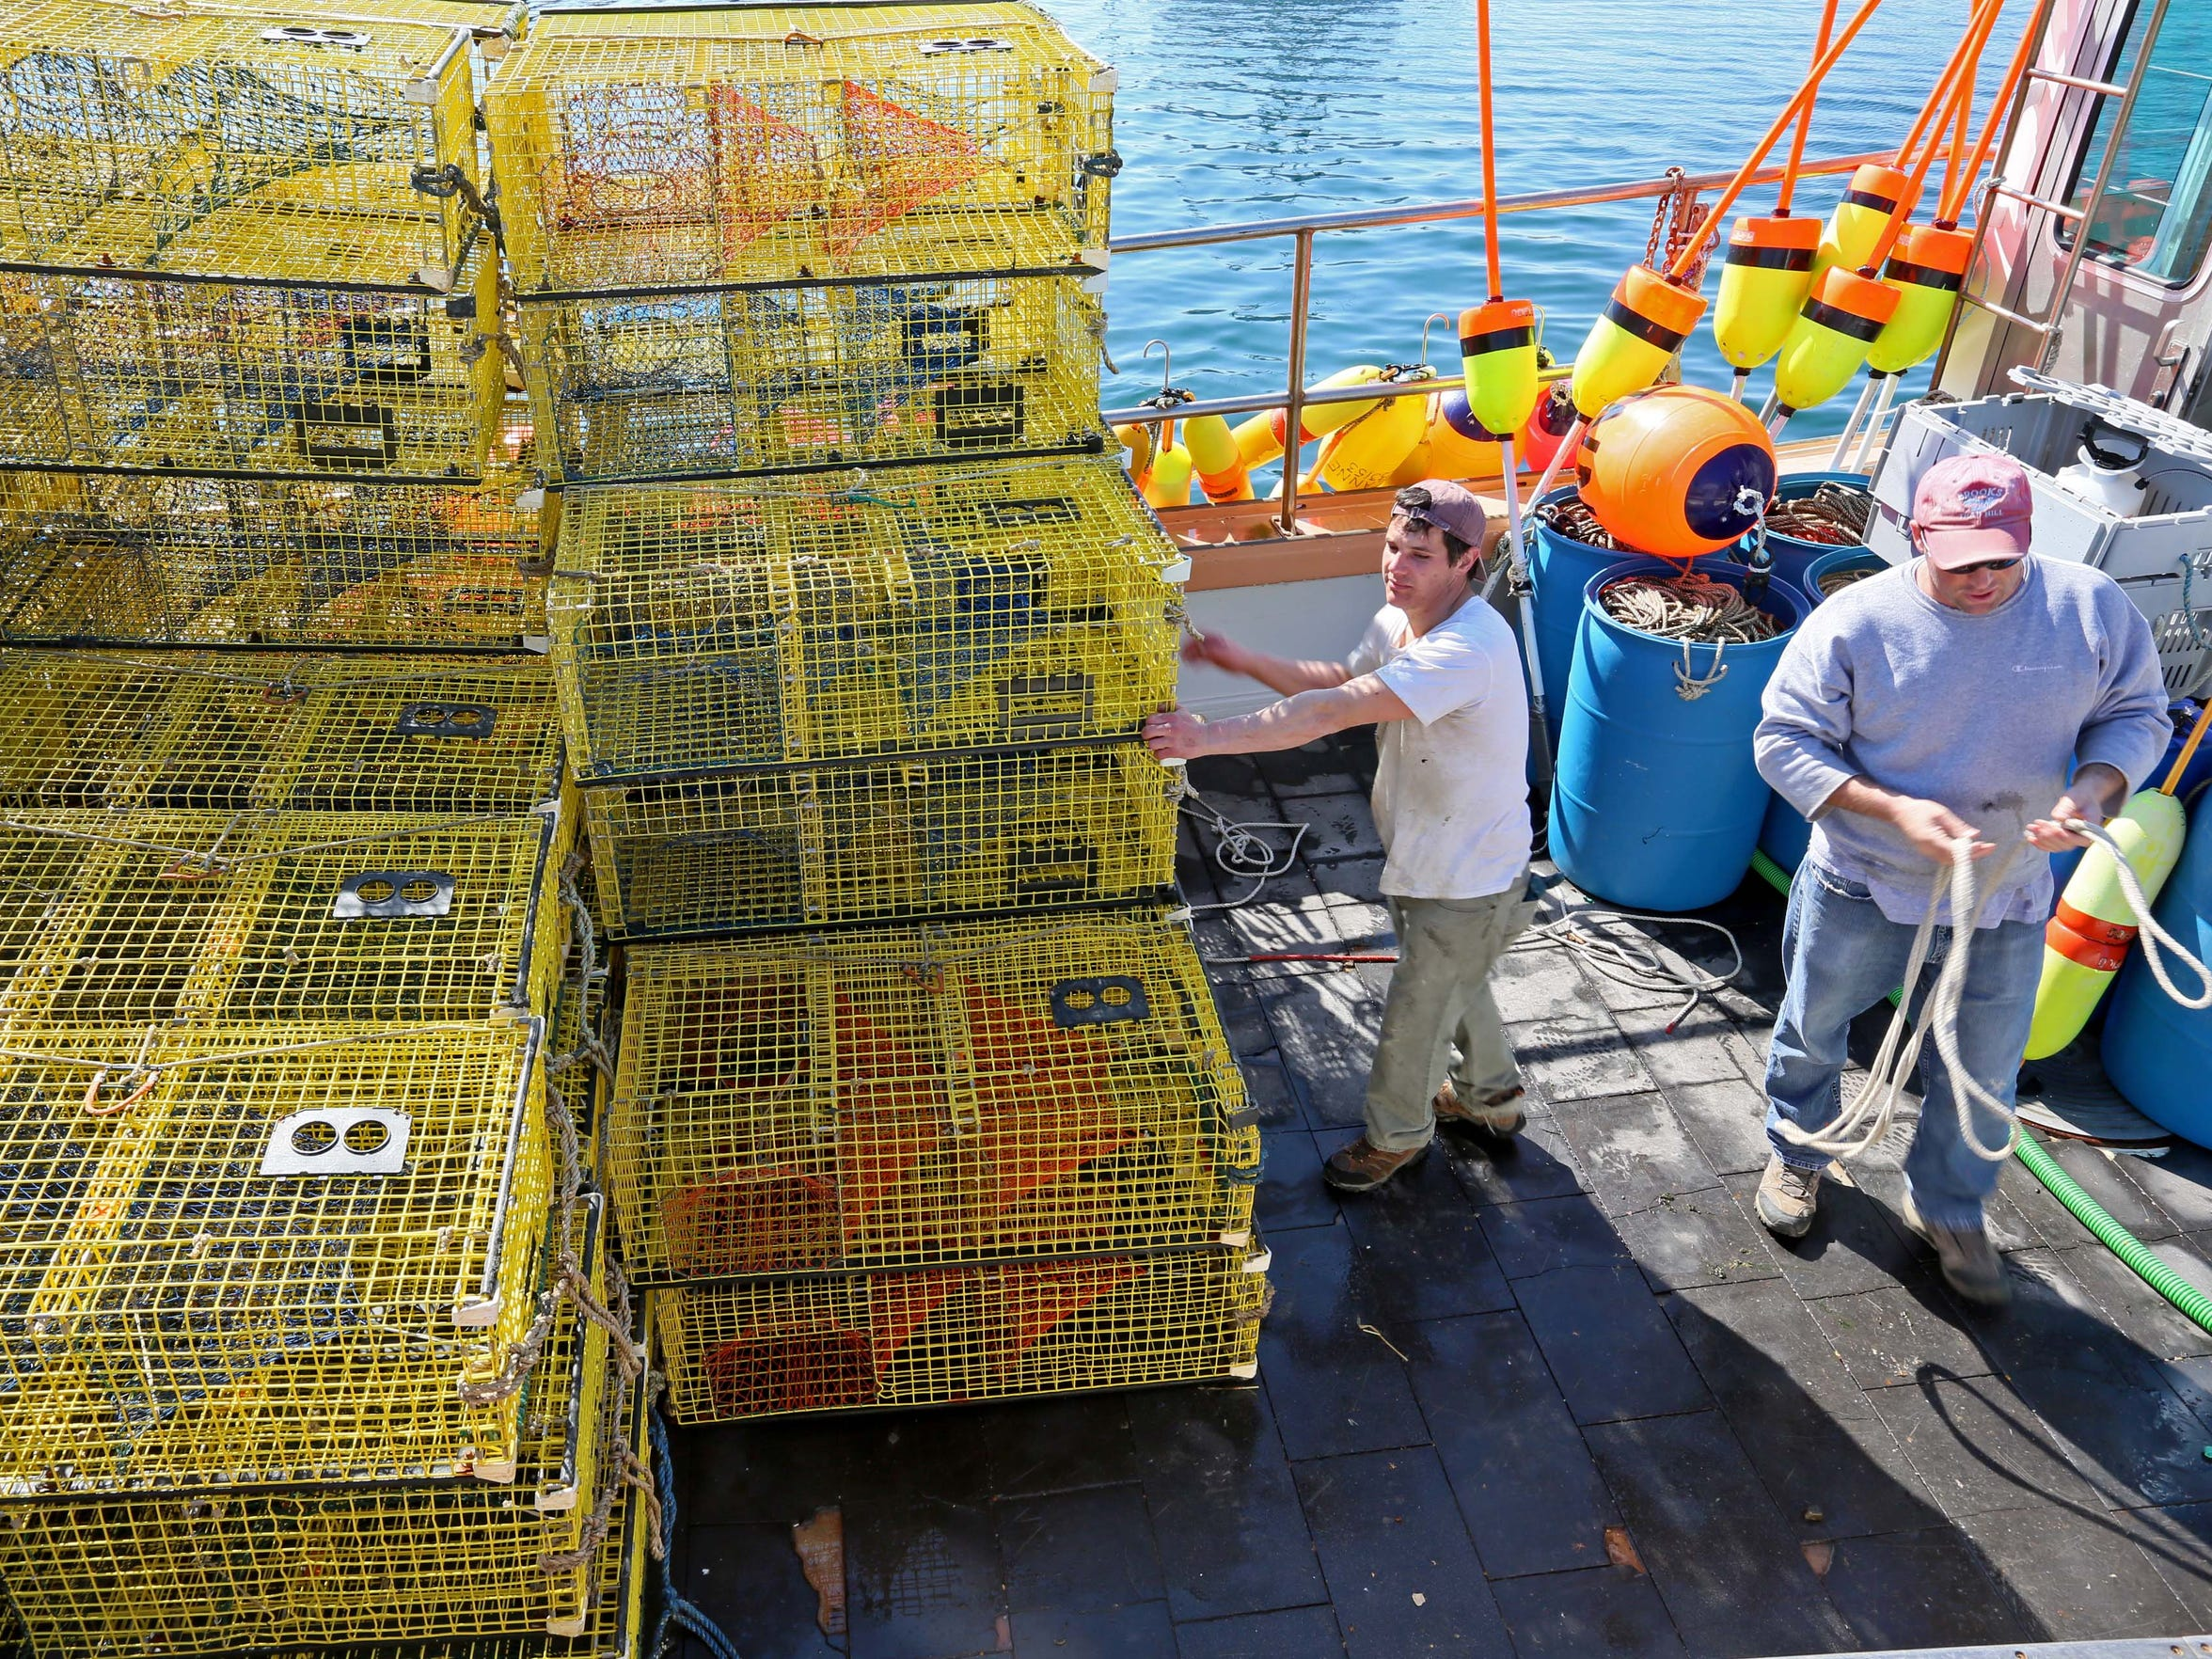 29 year-old Nick Frontiero helps unload a lobster boat